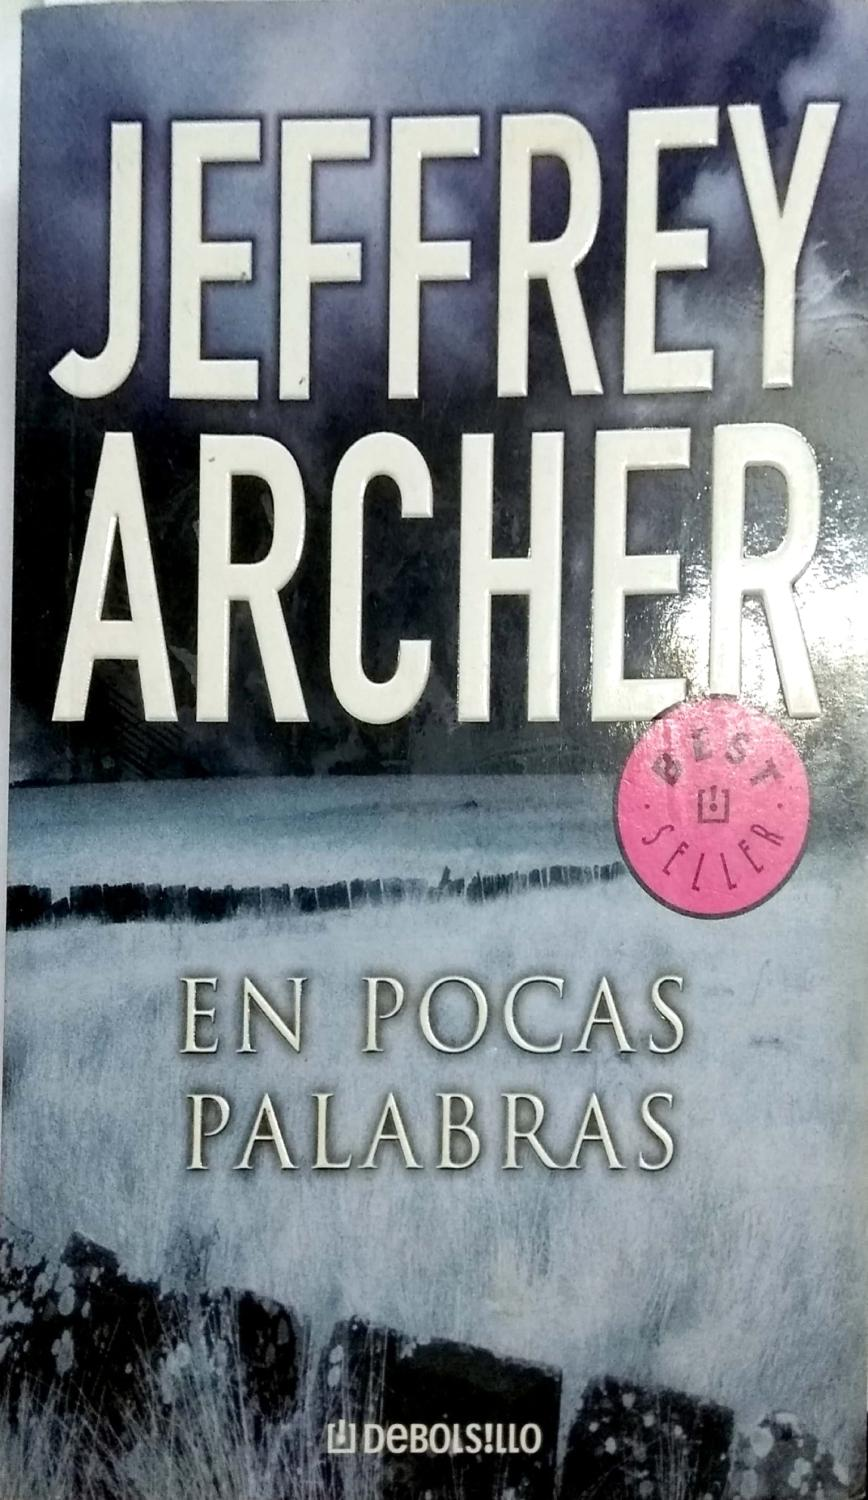 Jeffrey Archer Libros En Pocas Palabras To Cut A Long Story